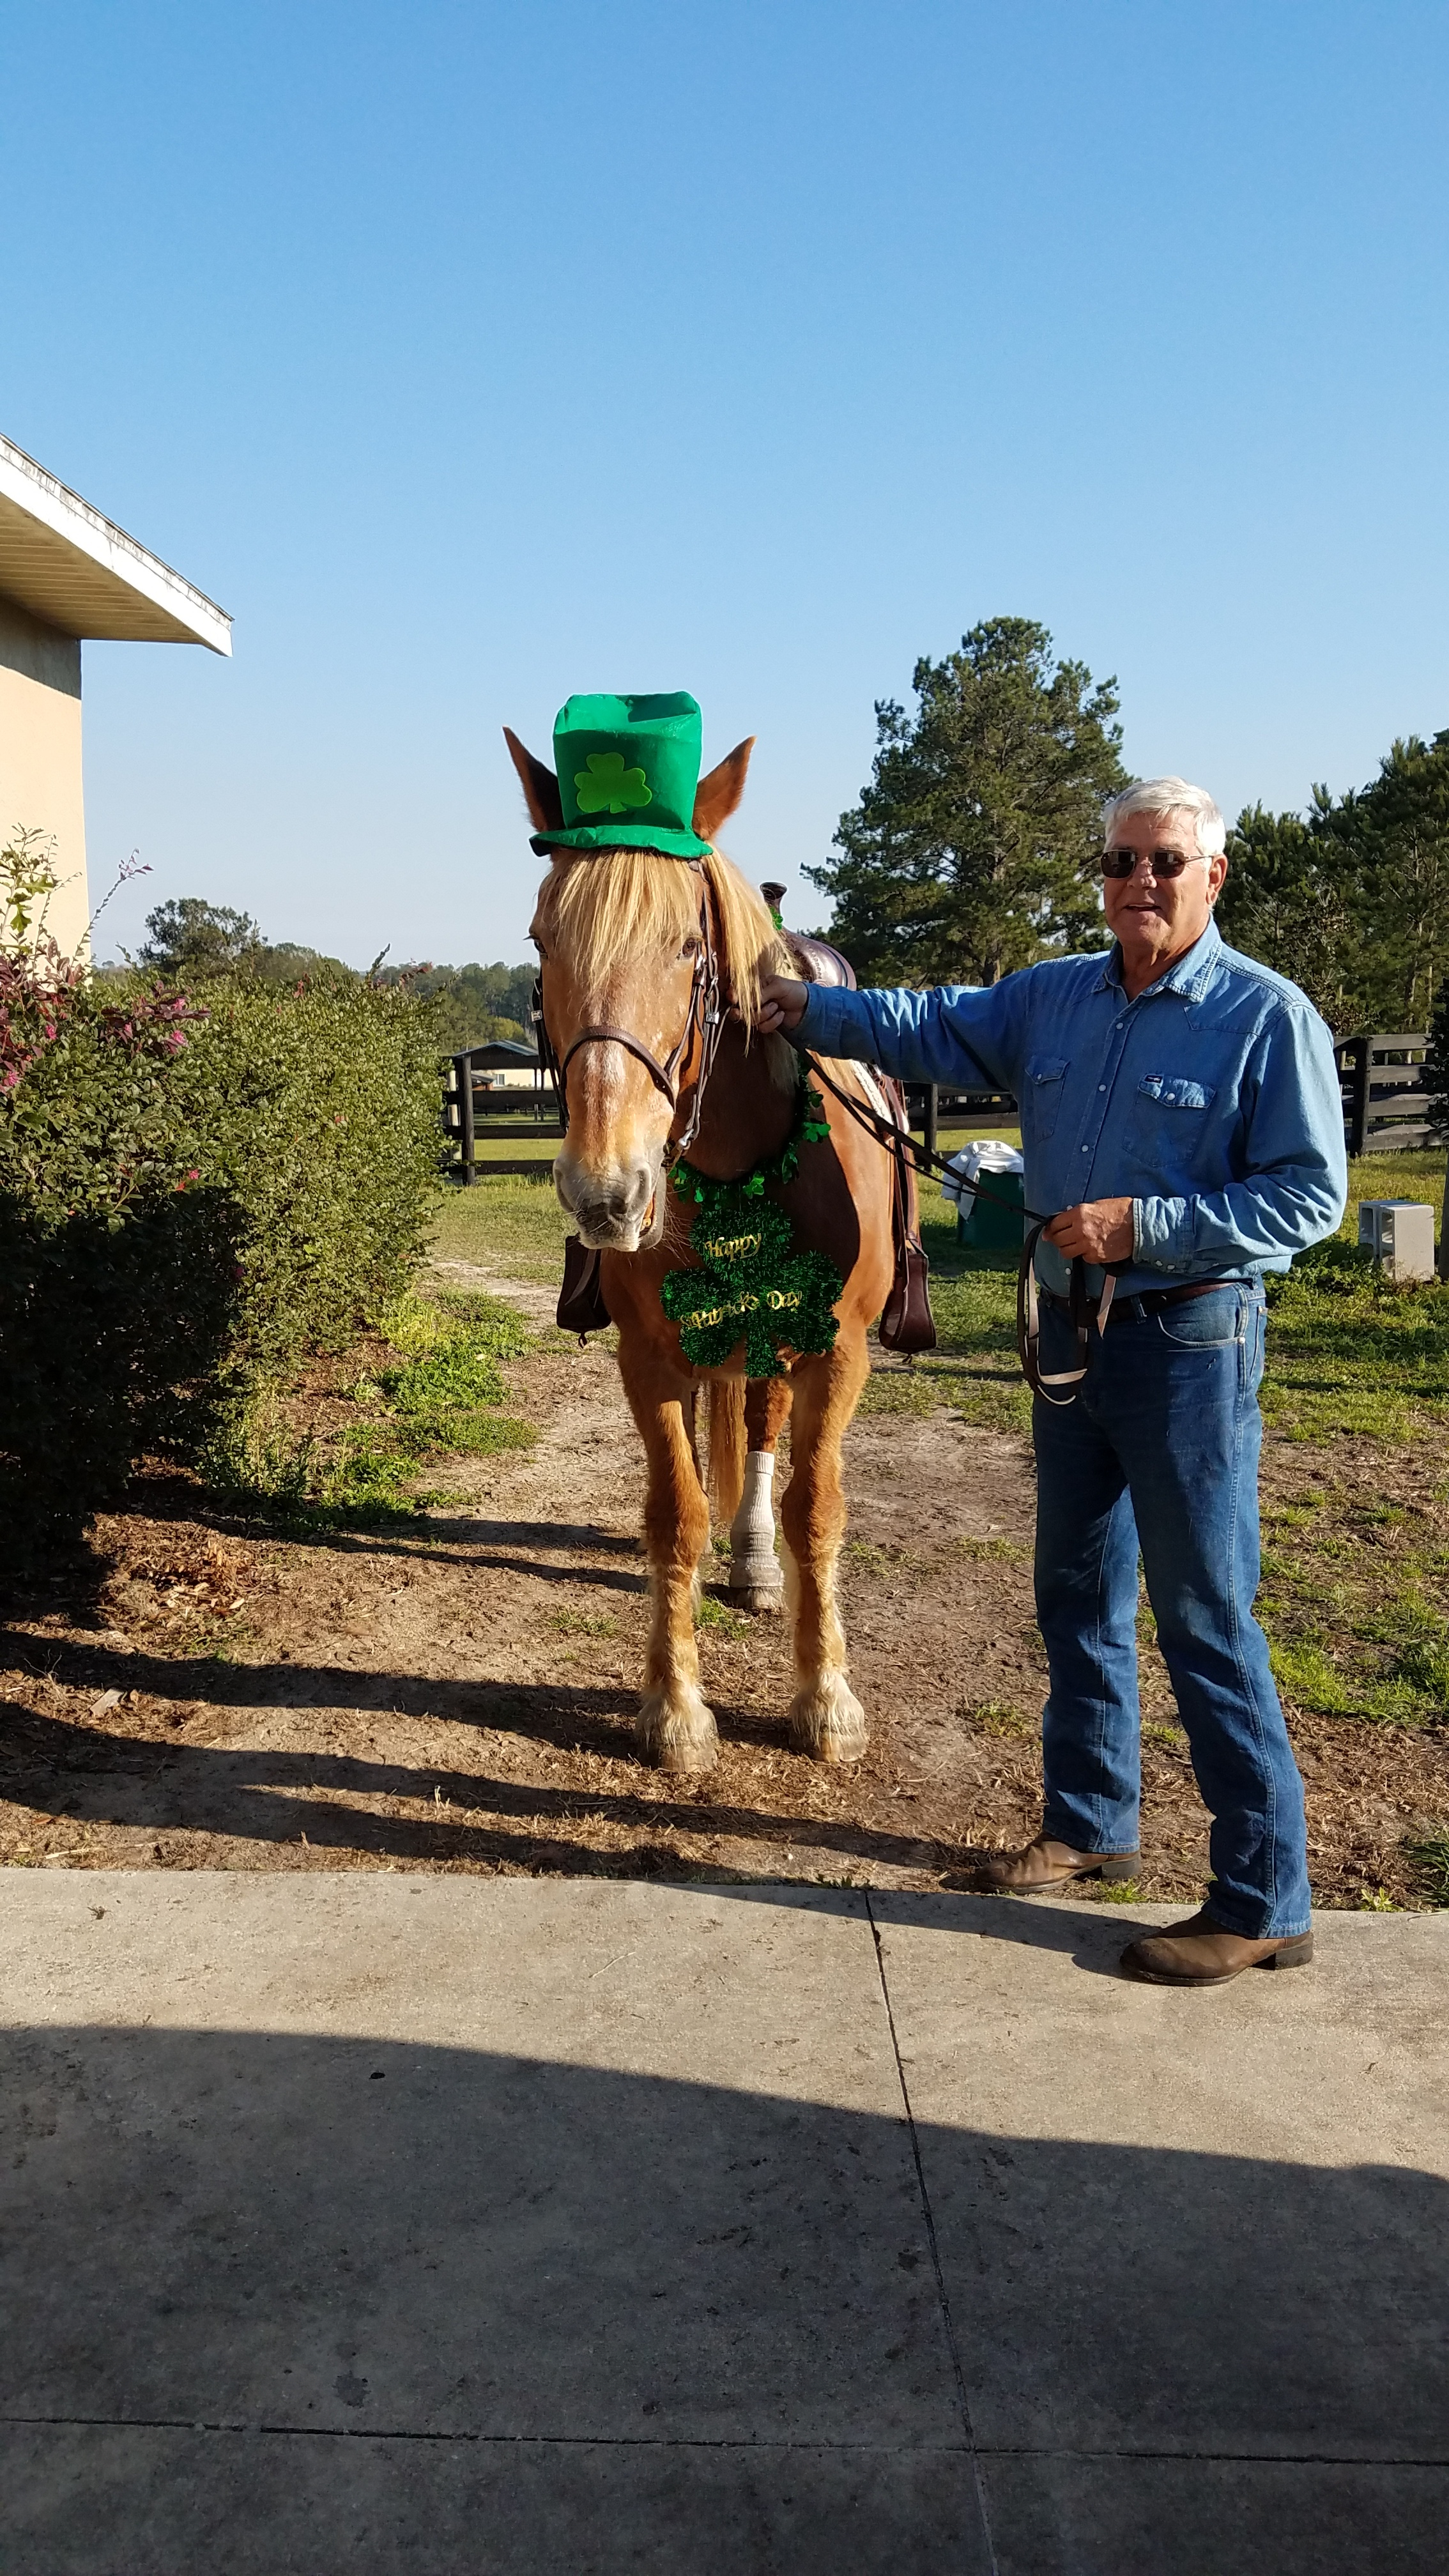 Retired Air Force and Commercial Airline pilot, now dressage student, Phil with his sweet mare, a Belgian draft/ Quarter horse cross.